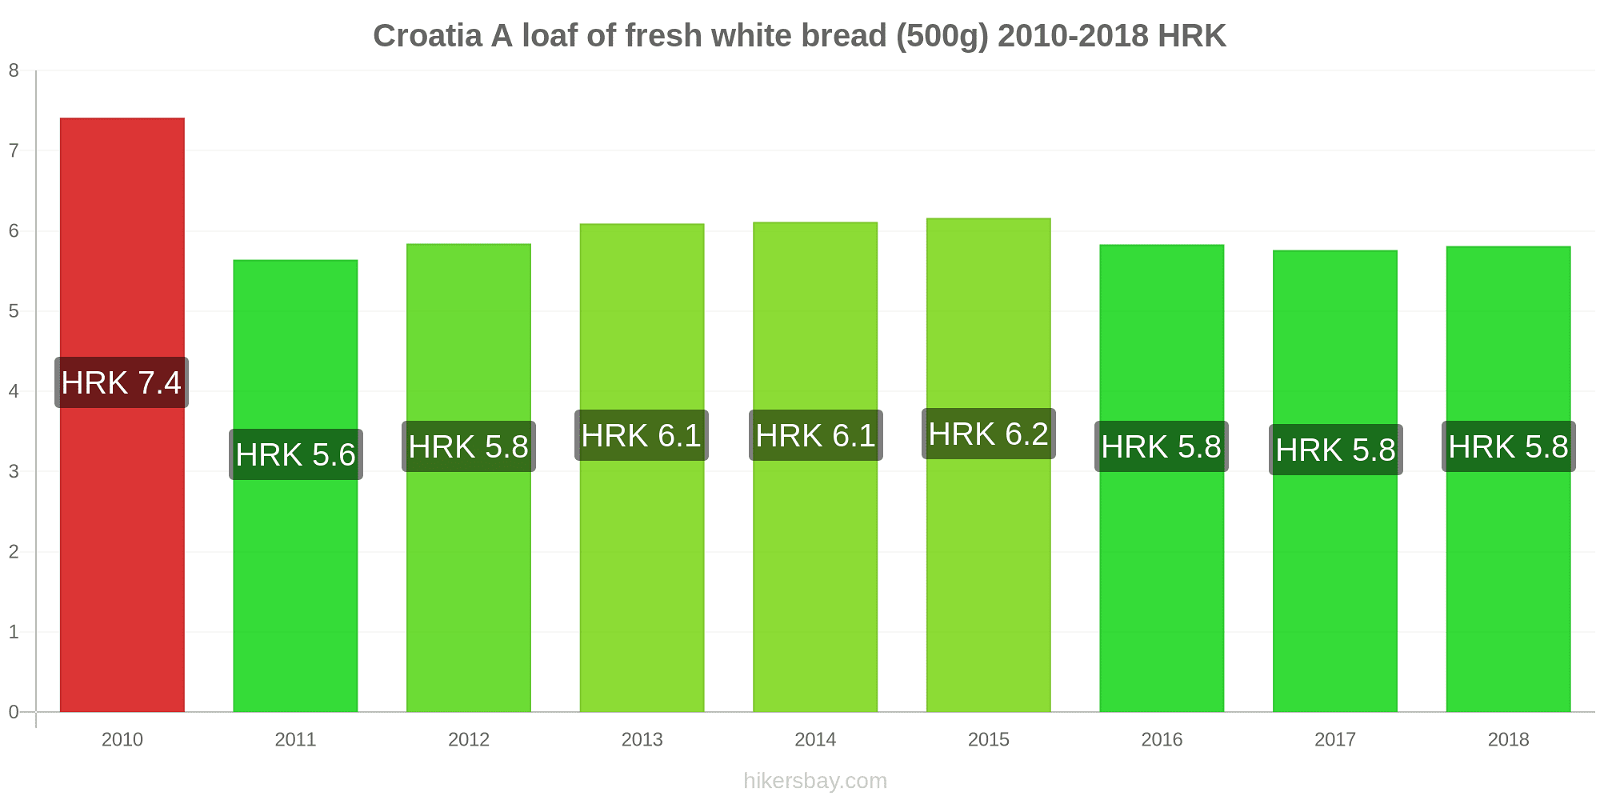 Croatia price changes A loaf of fresh white bread (500g) hikersbay.com